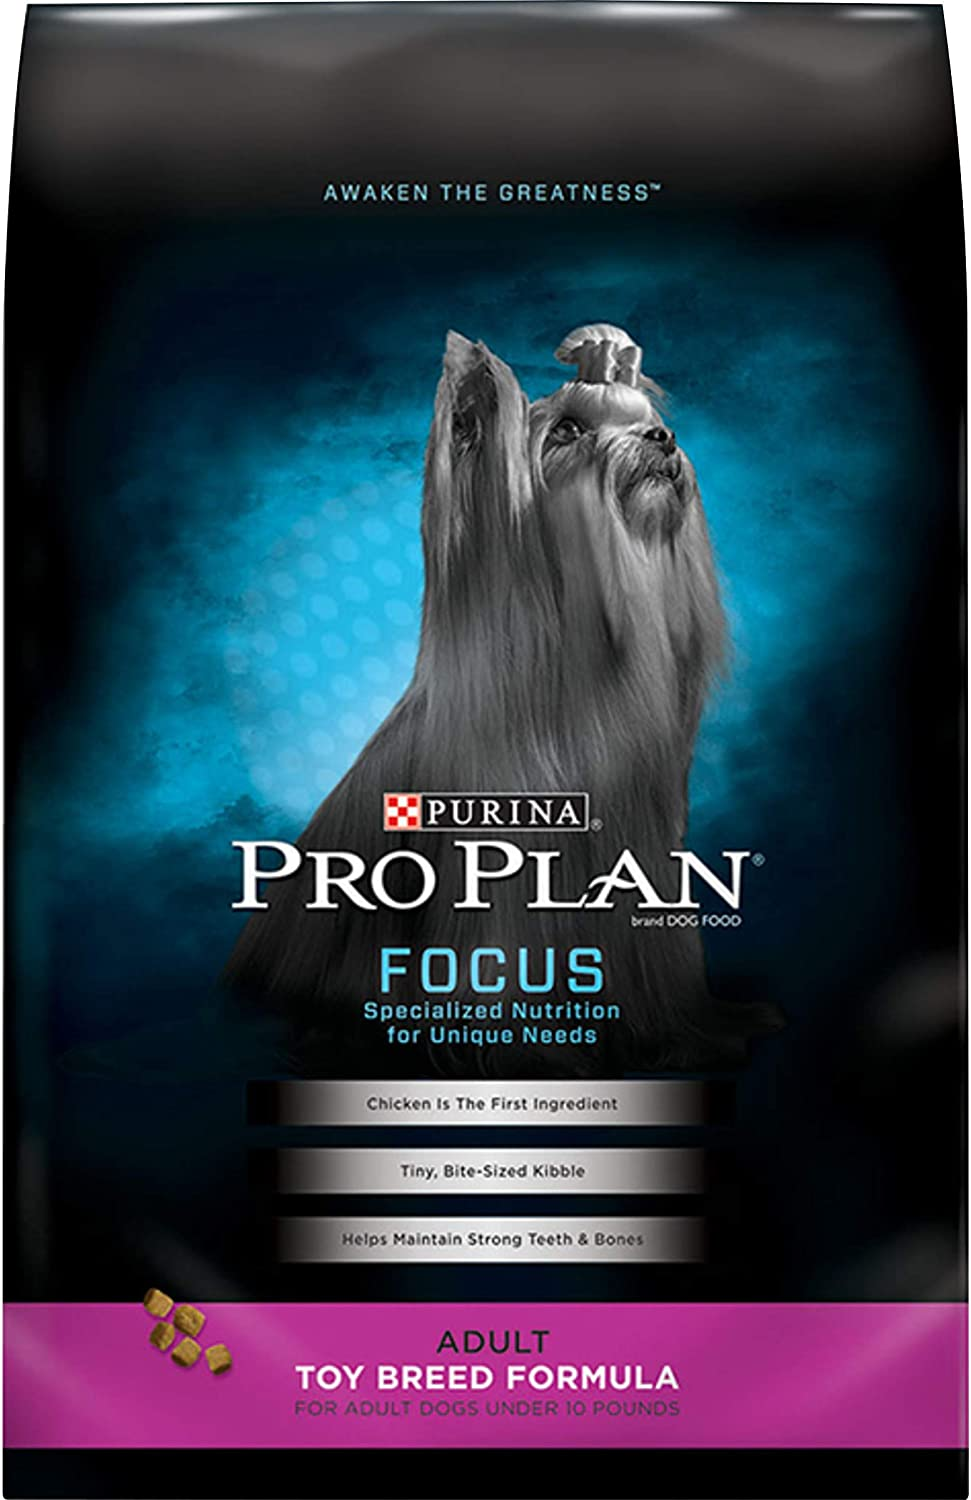 6. Purina Pro Plan Small & Toy Breed Formula